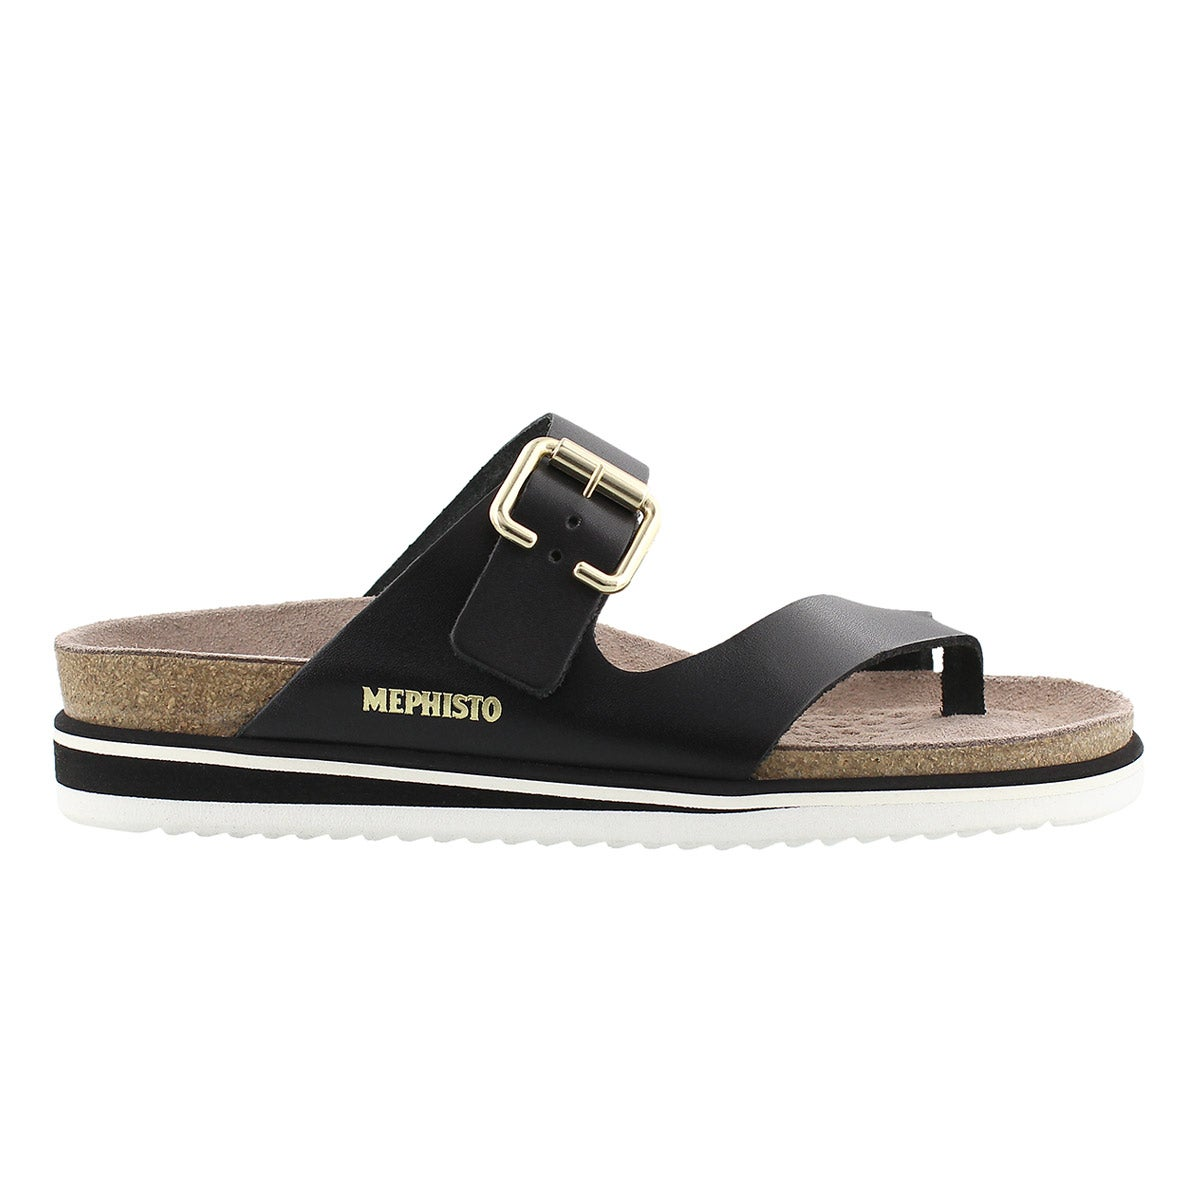 Lds Safo blk waxy cork footbed thong